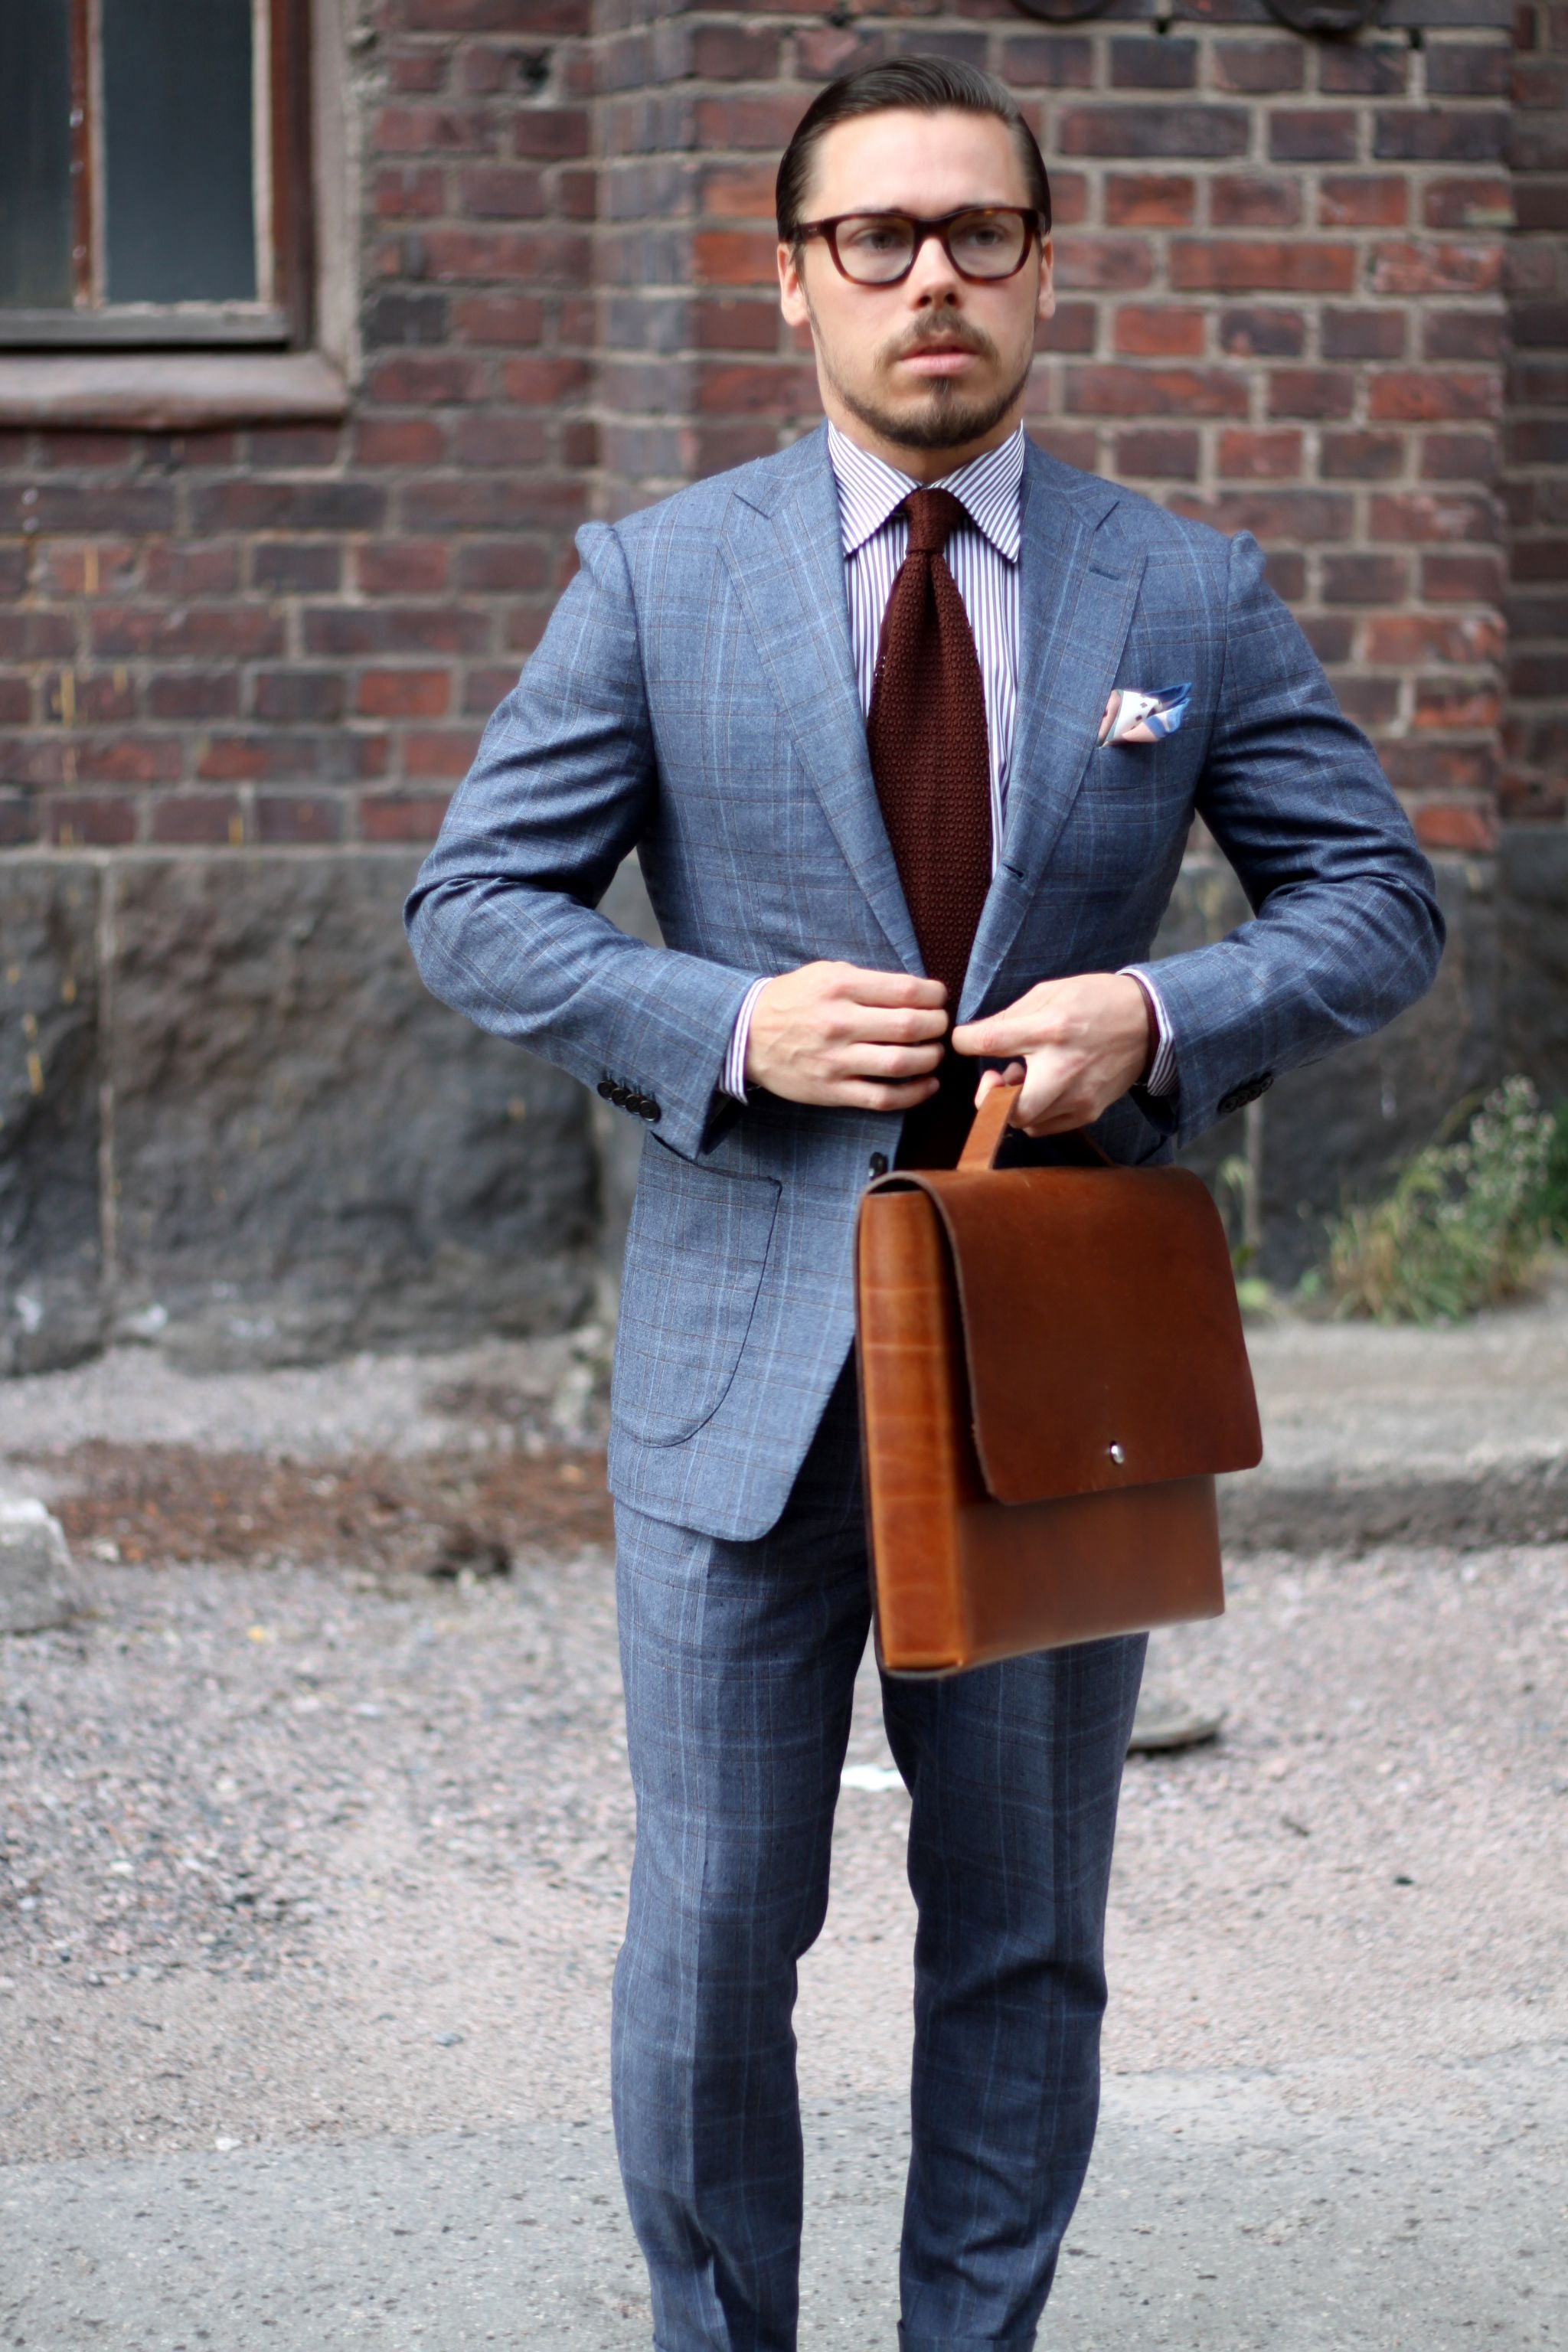 How to wear brown knit tie with suit